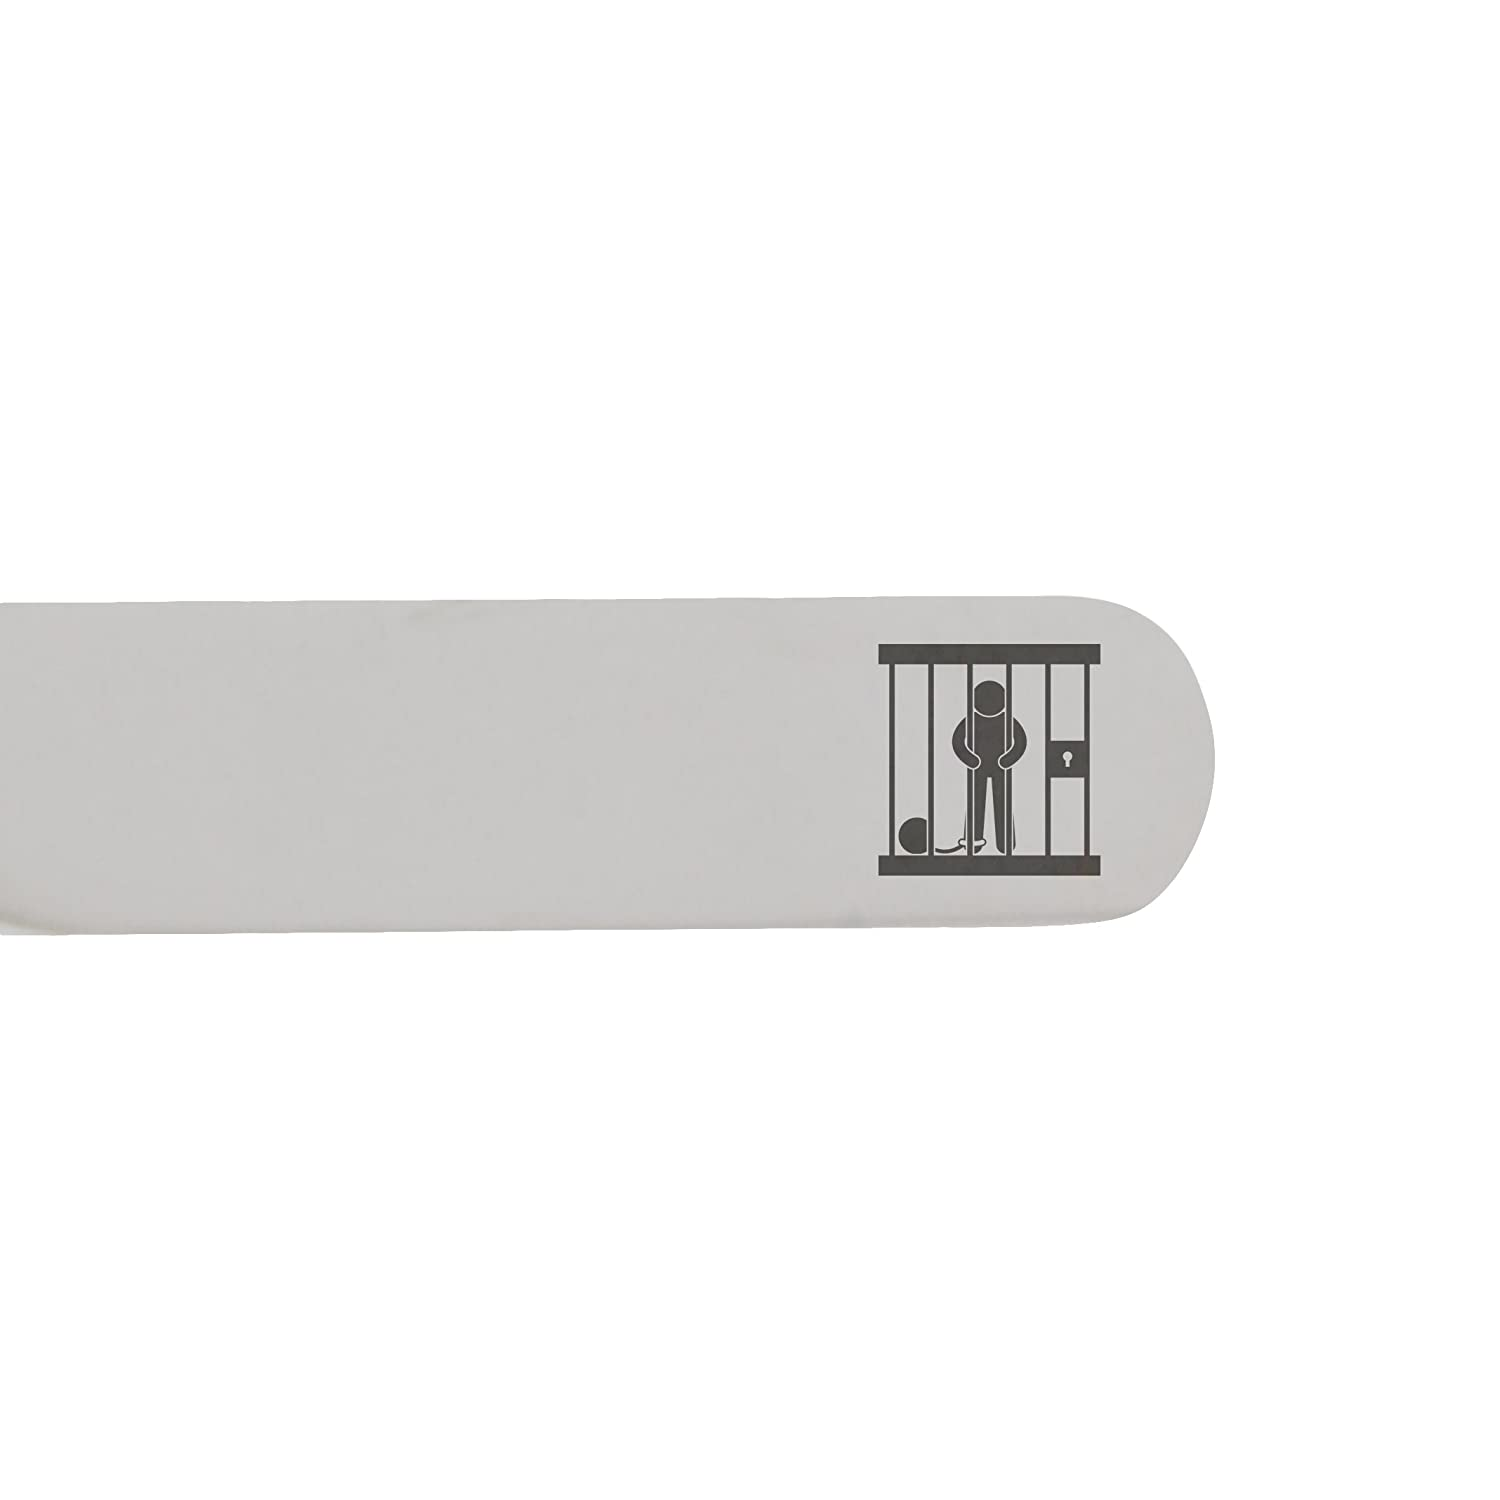 MODERN GOODS SHOP Stainless Steel Collar Stays With Laser Engraved Jail Design Made In USA 2.5 Inch Metal Collar Stiffeners